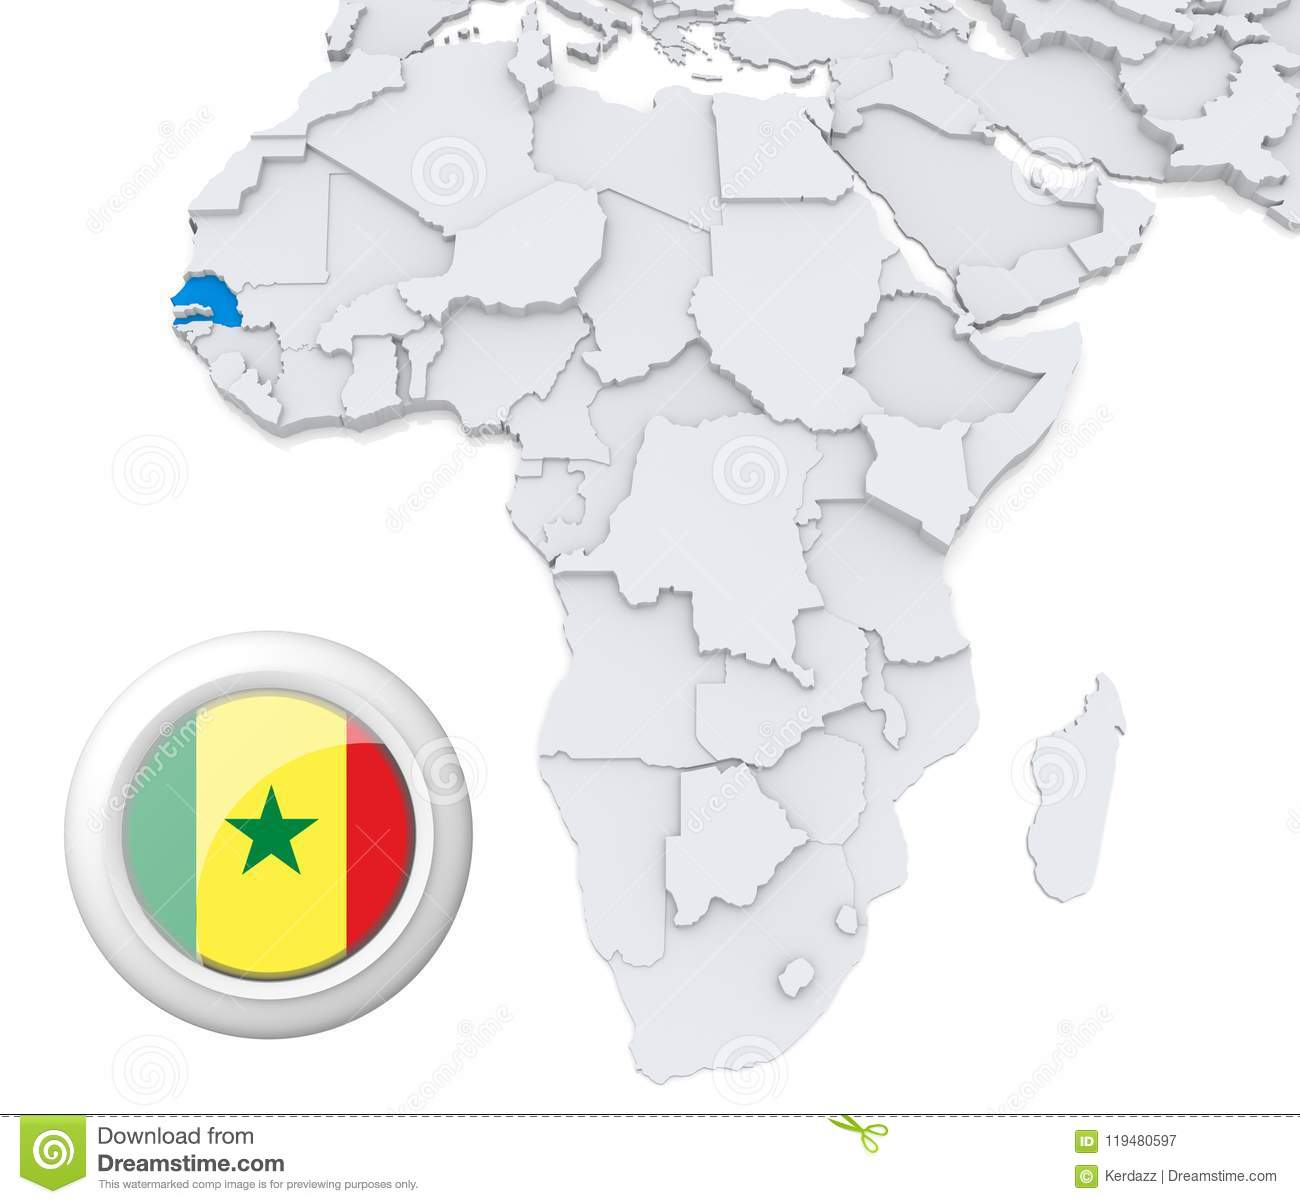 Senegal On Africa Map.Senegal On Africa Map Stock Illustration Illustration Of Basic